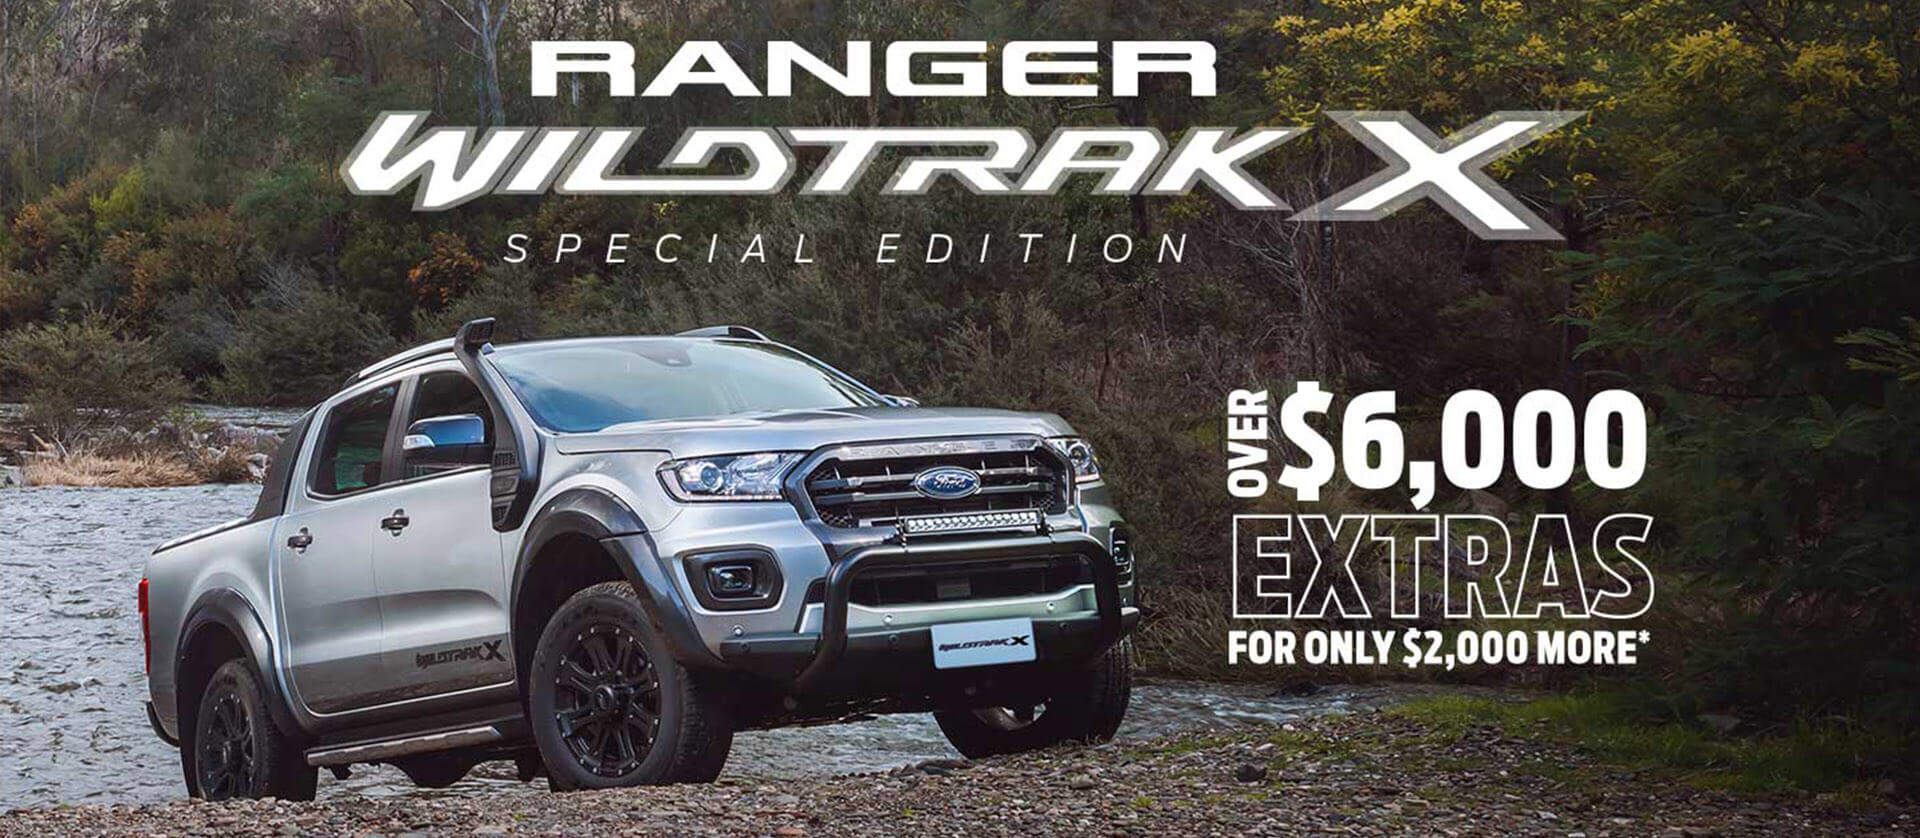 Ford Ranger Wildtrak X Offer